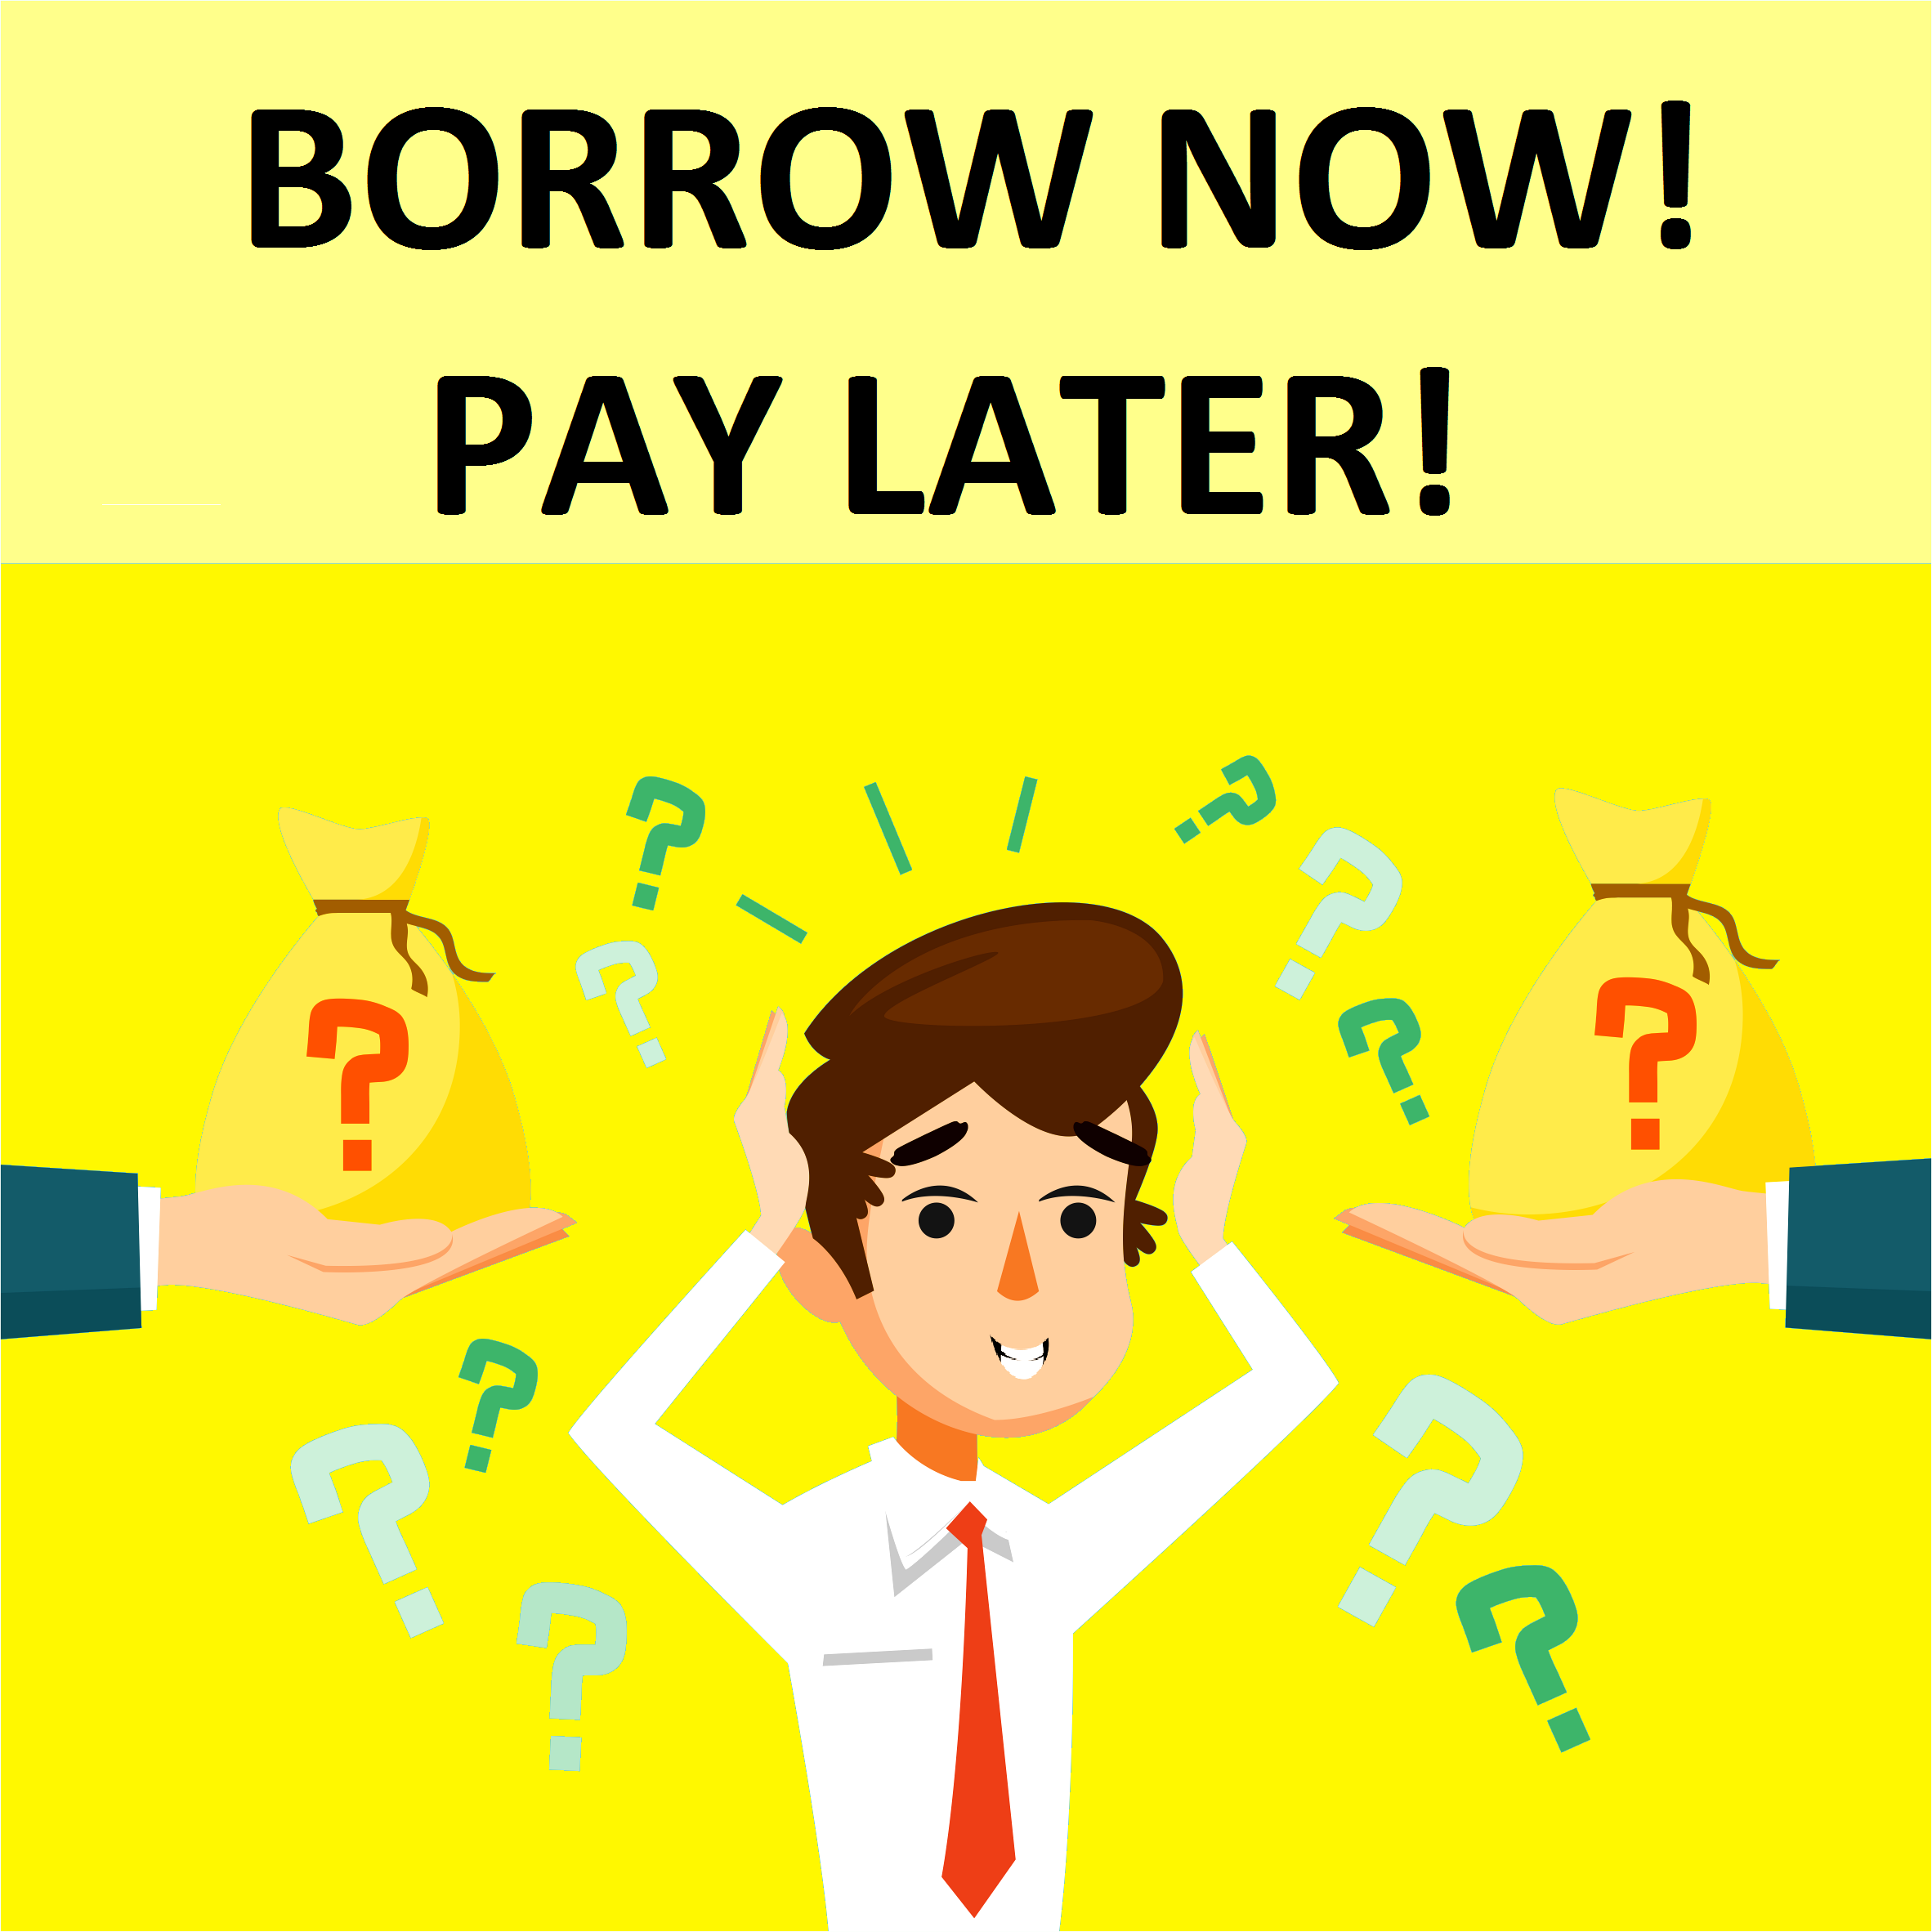 Borrow Now! Pay Later! ASAP